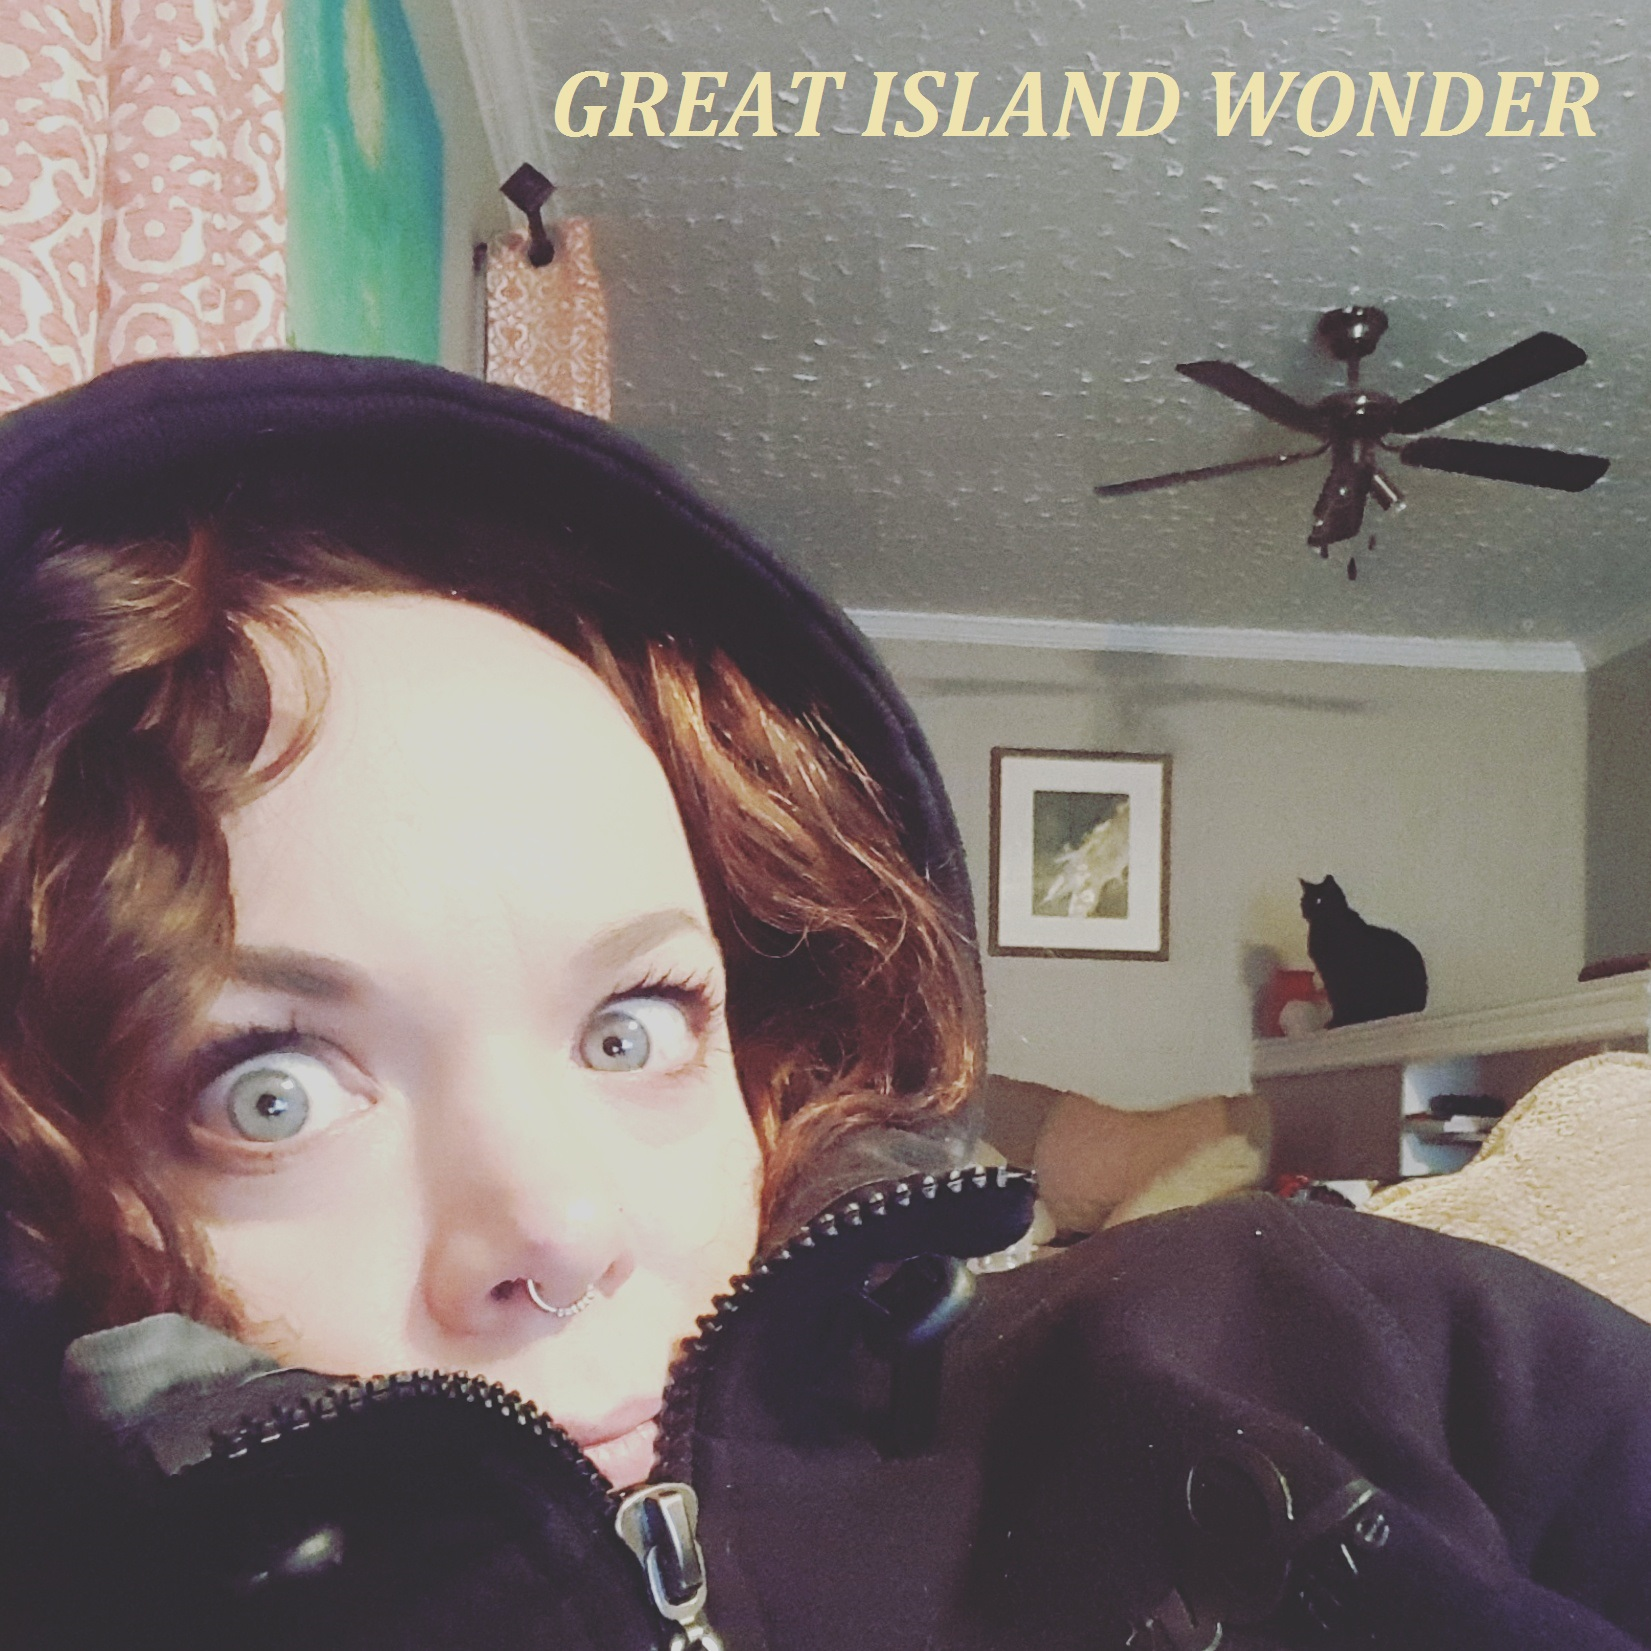 Great Island Wonder - album front cover